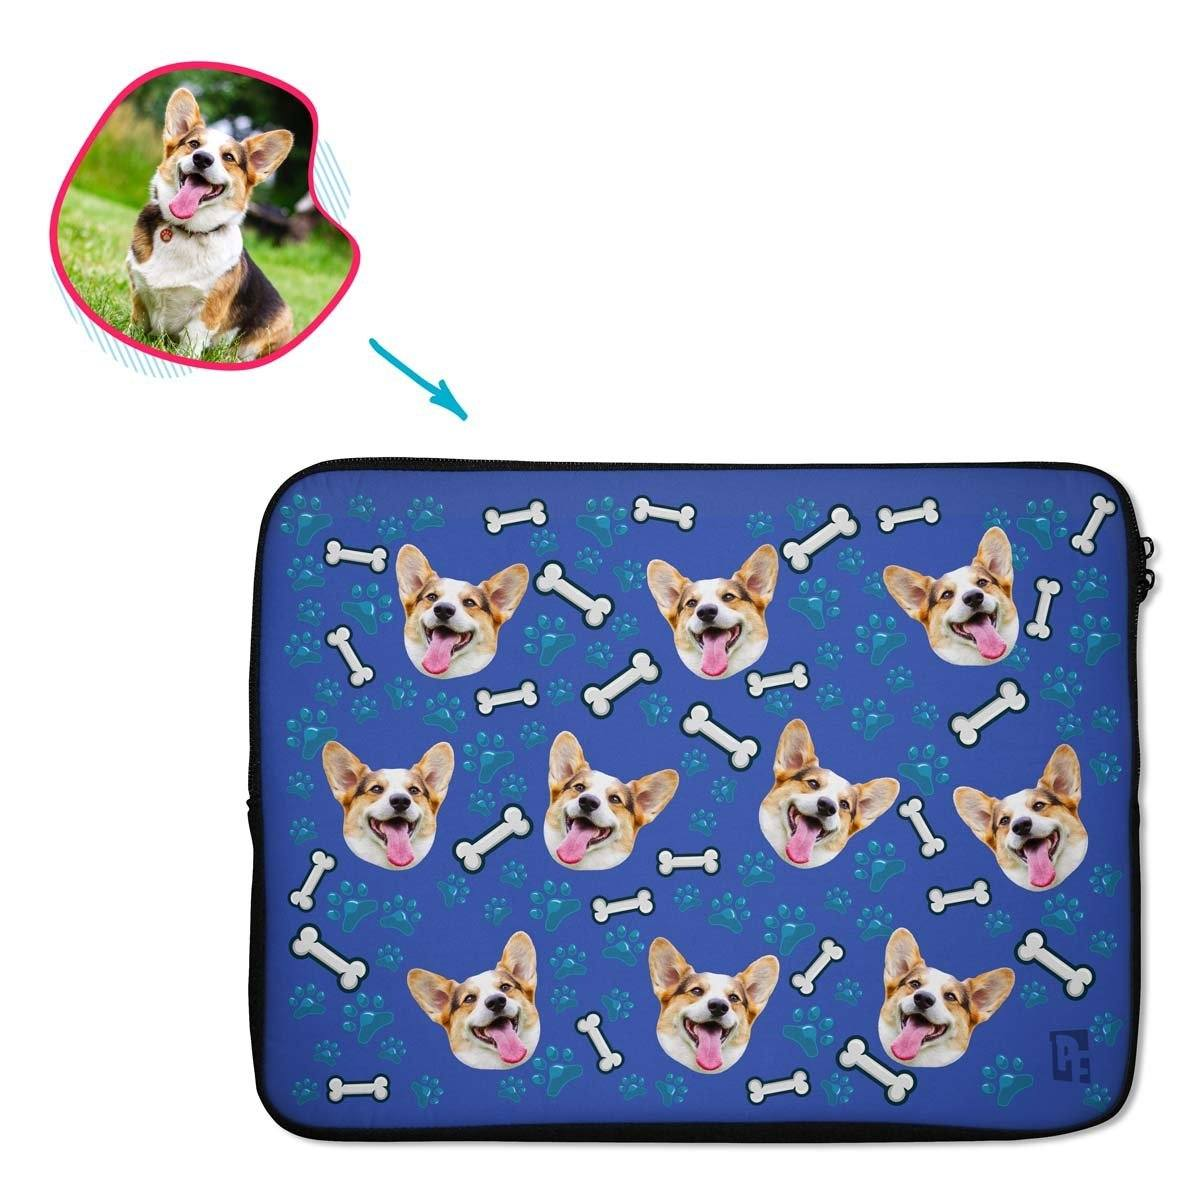 darkblue Dog laptop sleeve personalized with photo of face printed on them